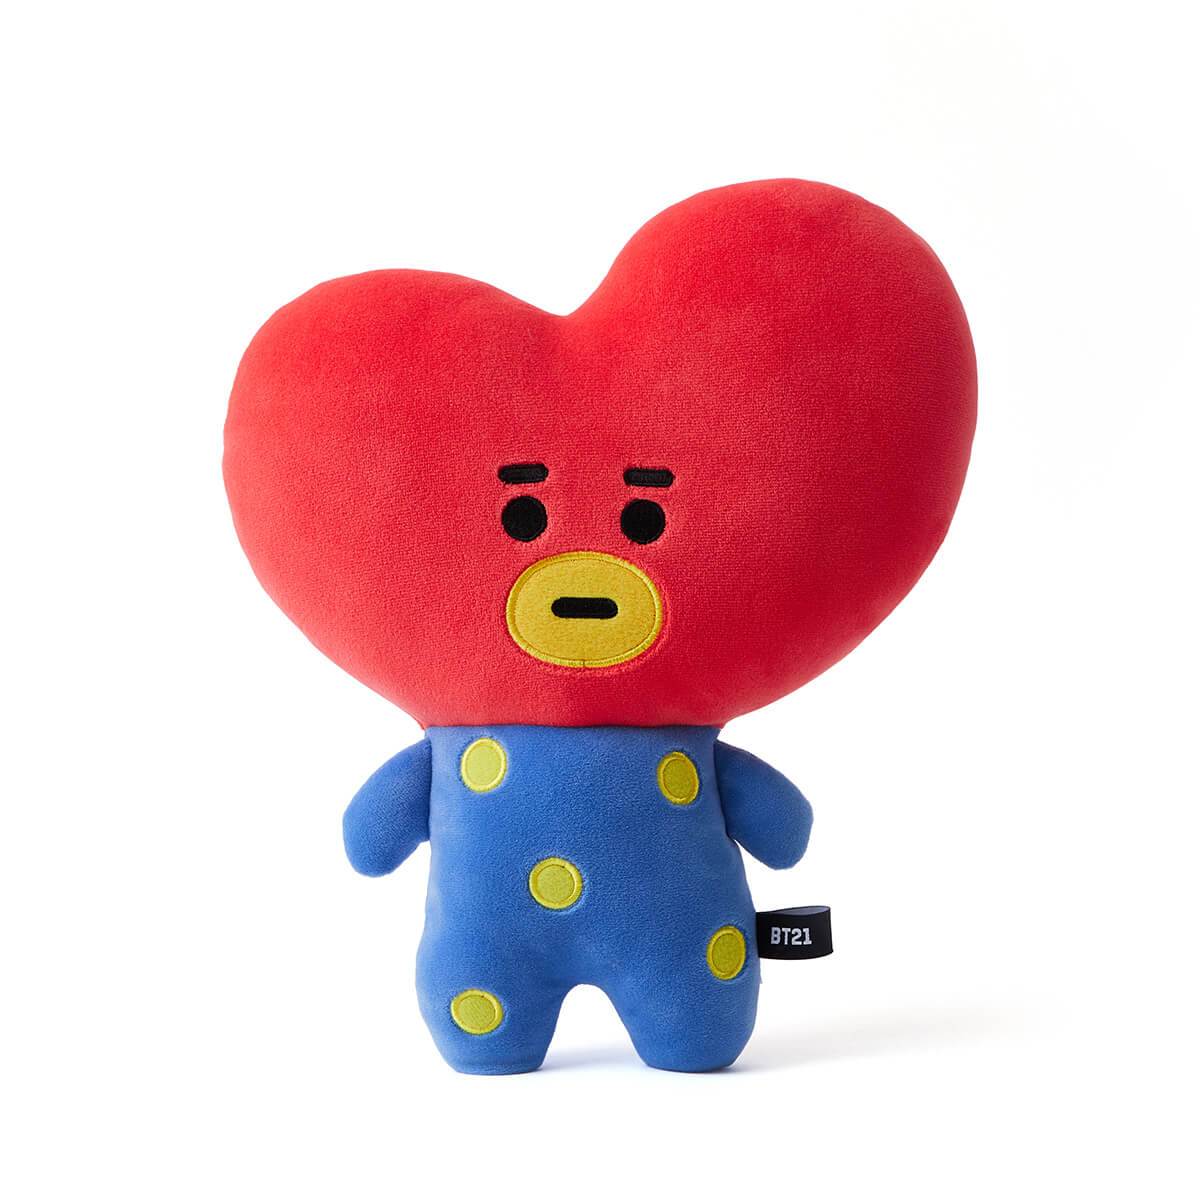 BT21 TATA Mini Flat Body Cushion